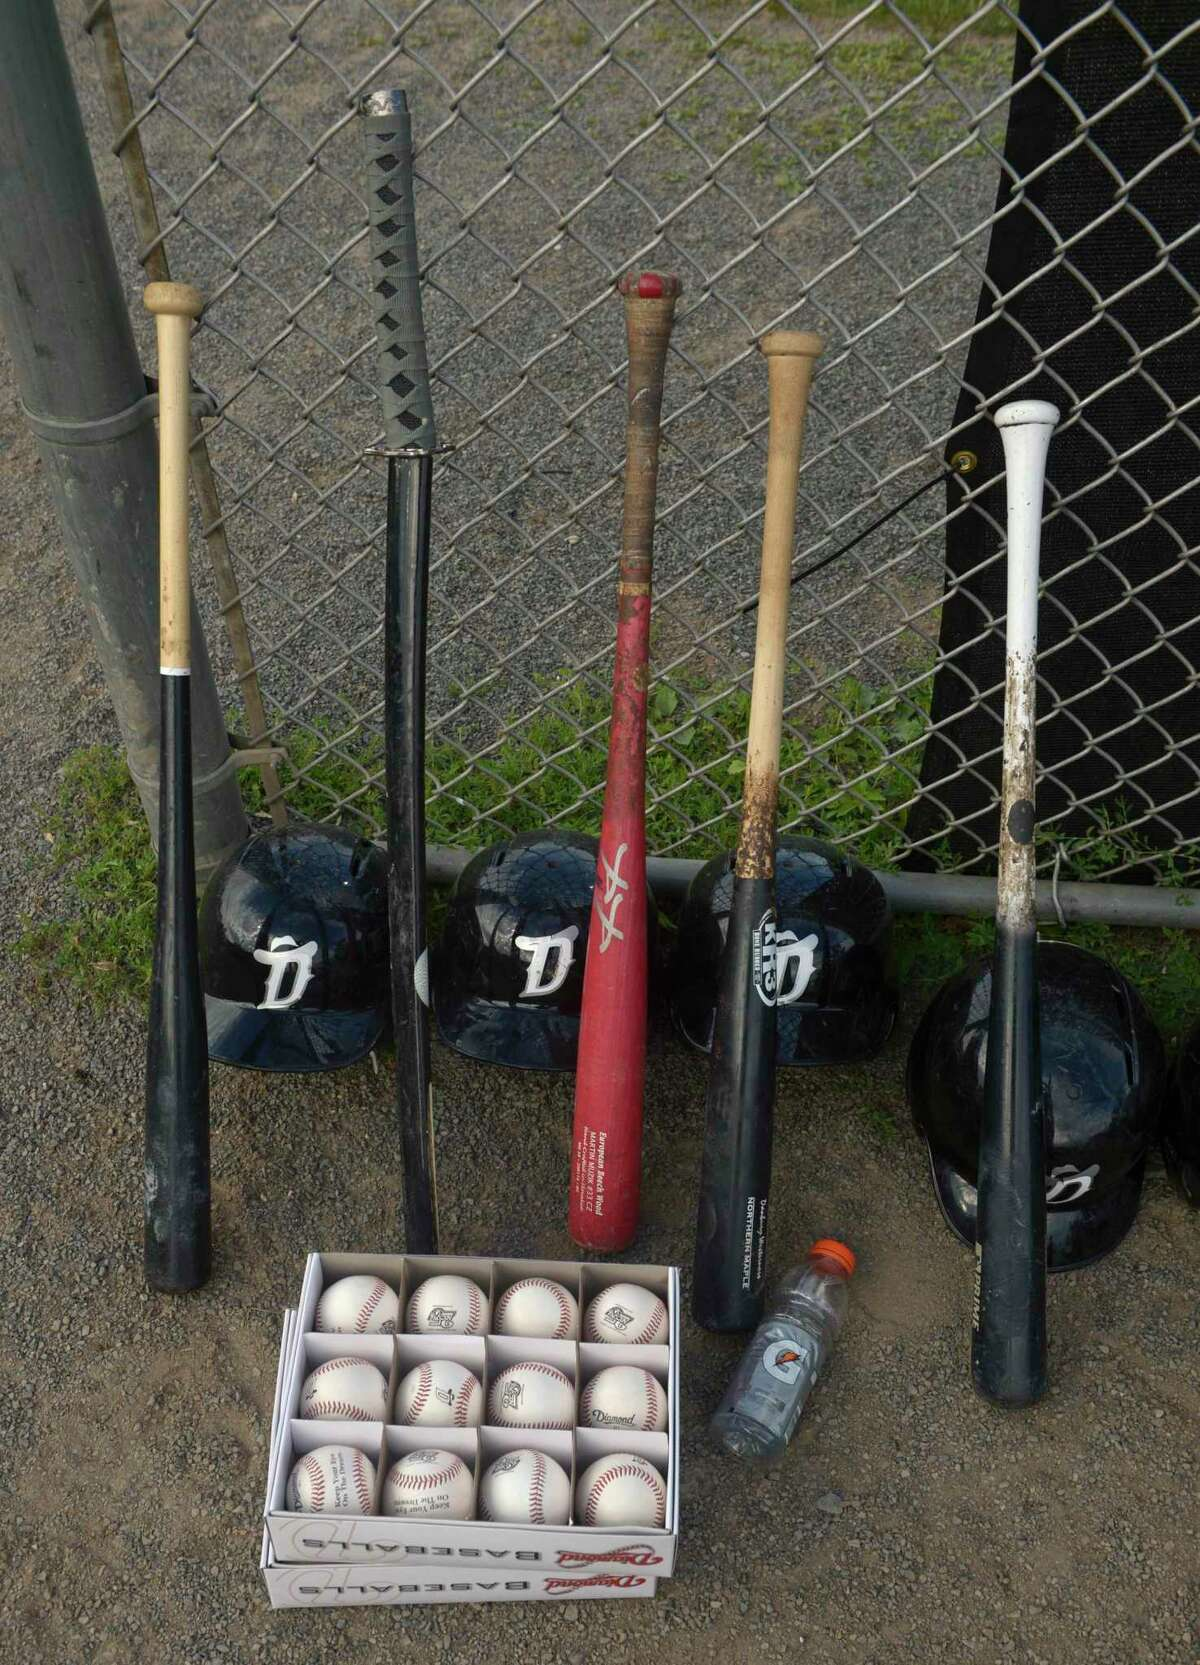 The NECBL is making its return this summer with 13 teams located in all six New England States, including the Westerners in Danbury.